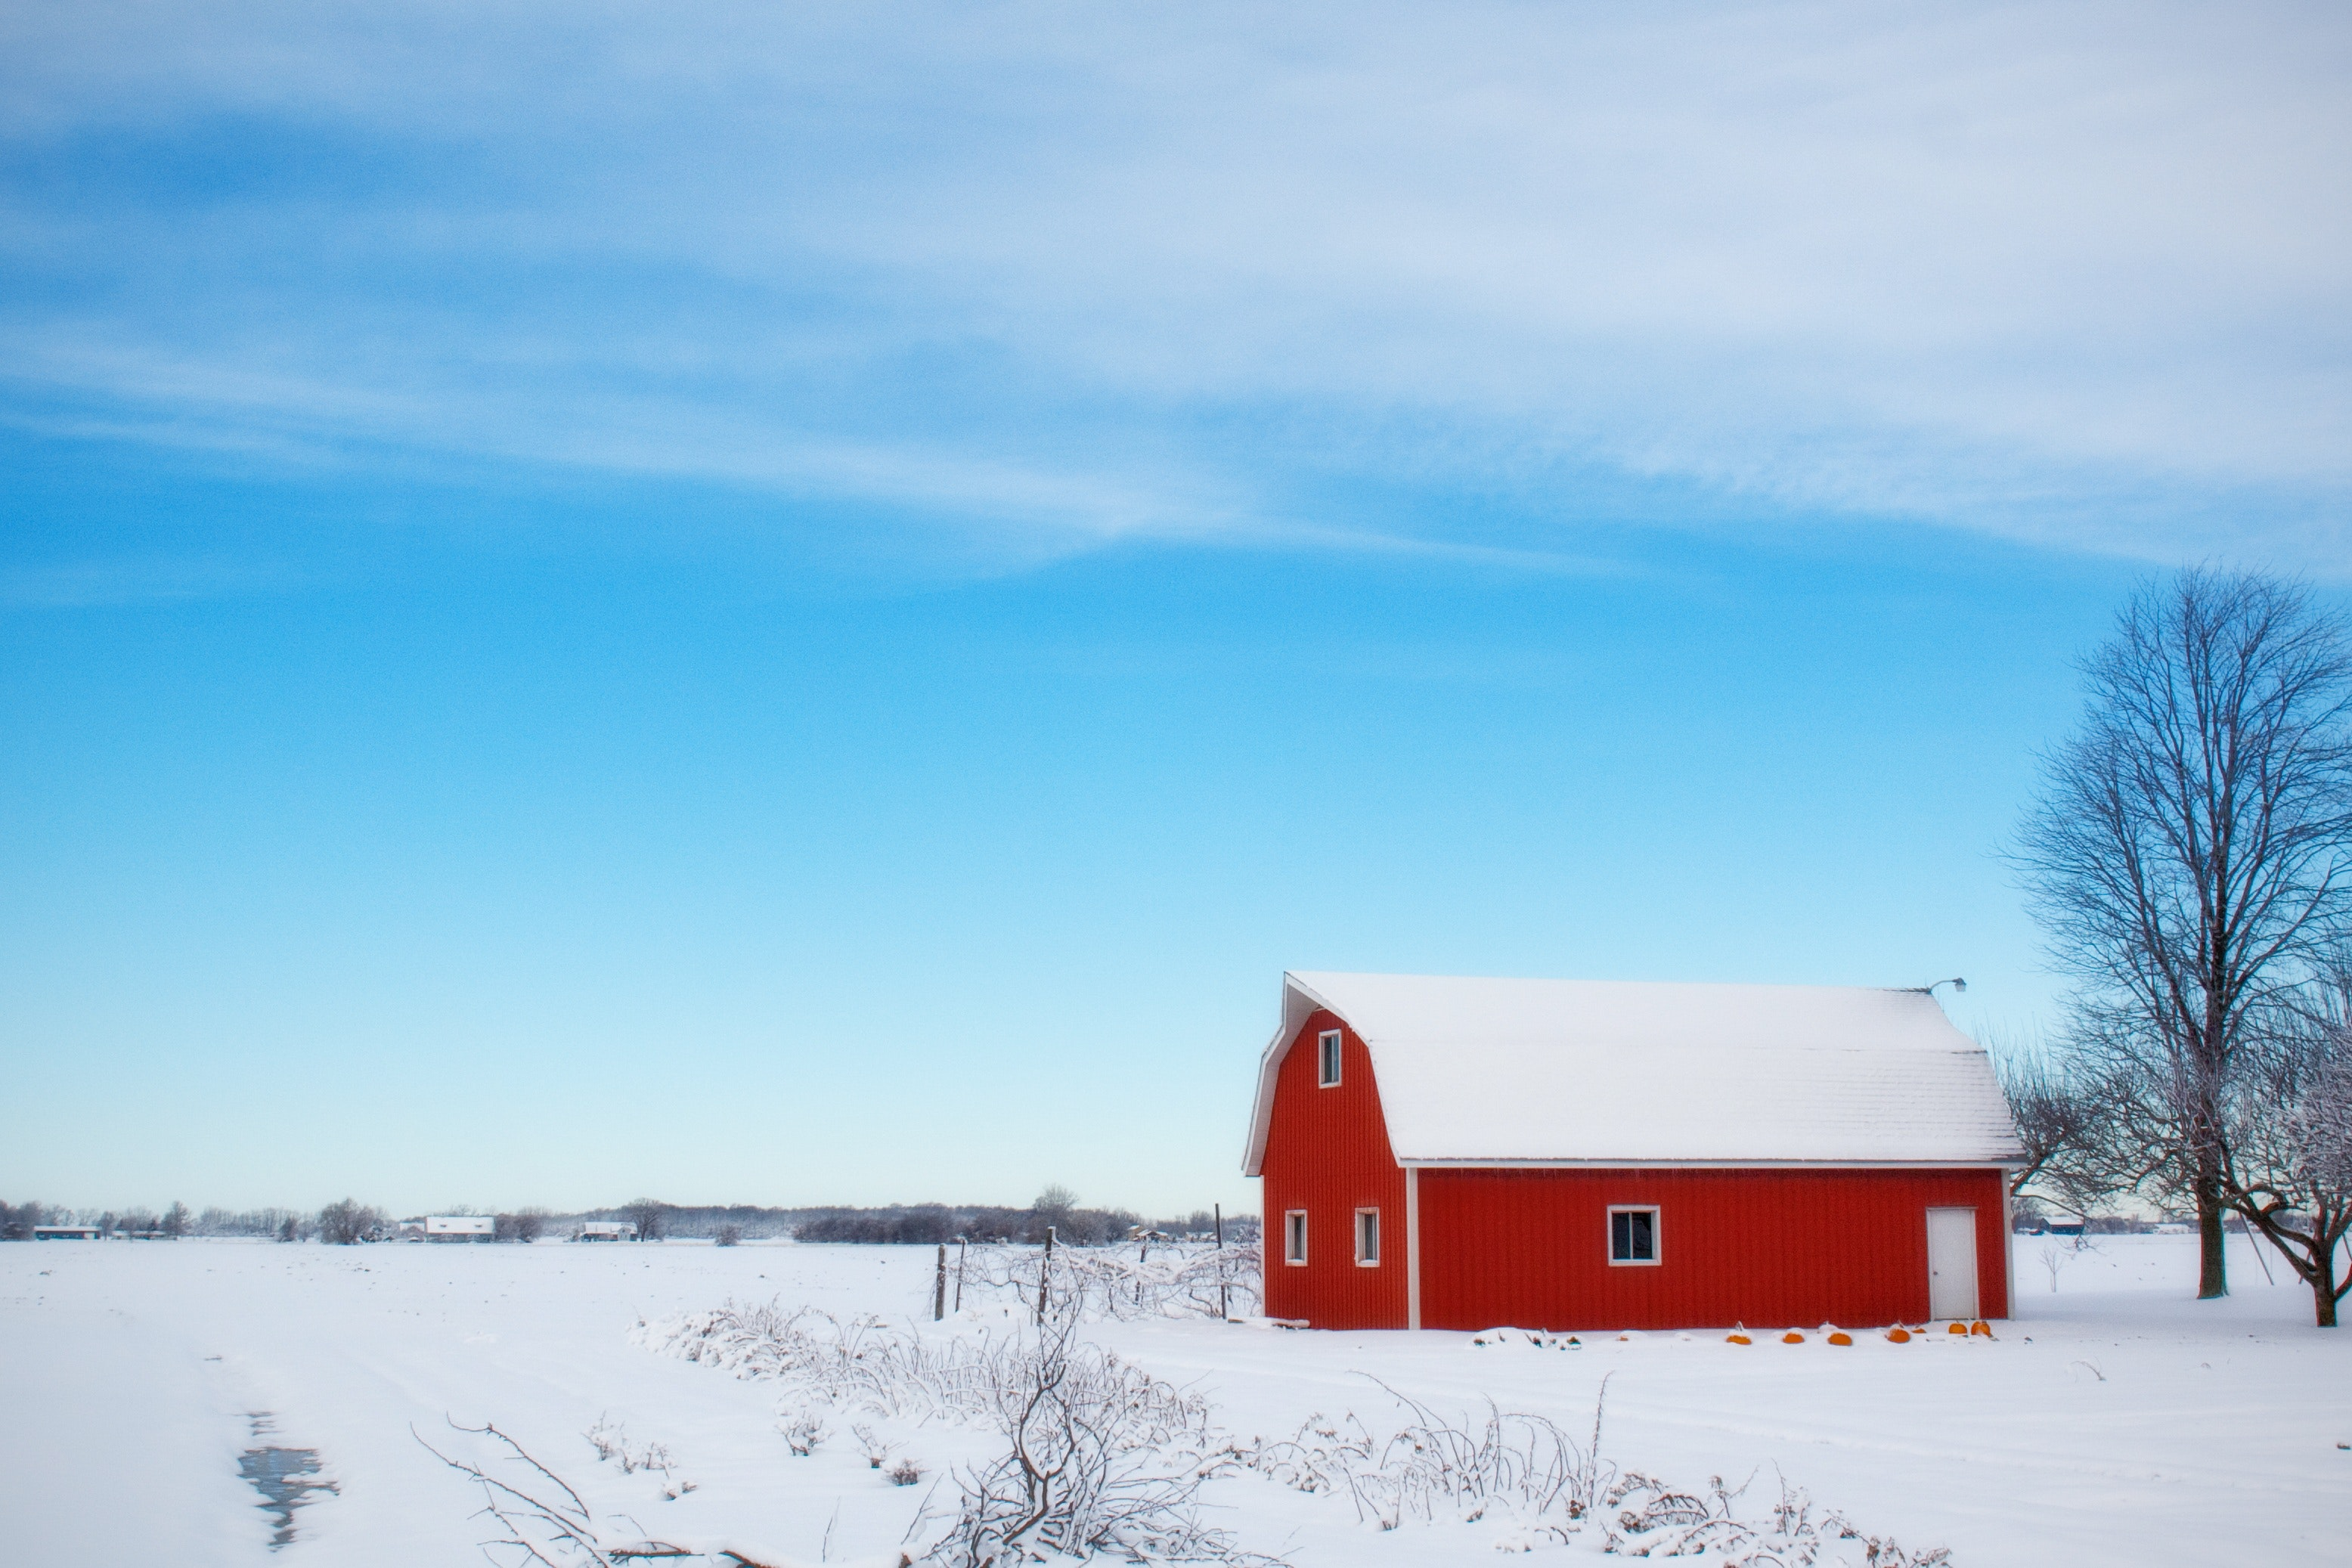 Red barn house in the middle of snow field during daytime photo